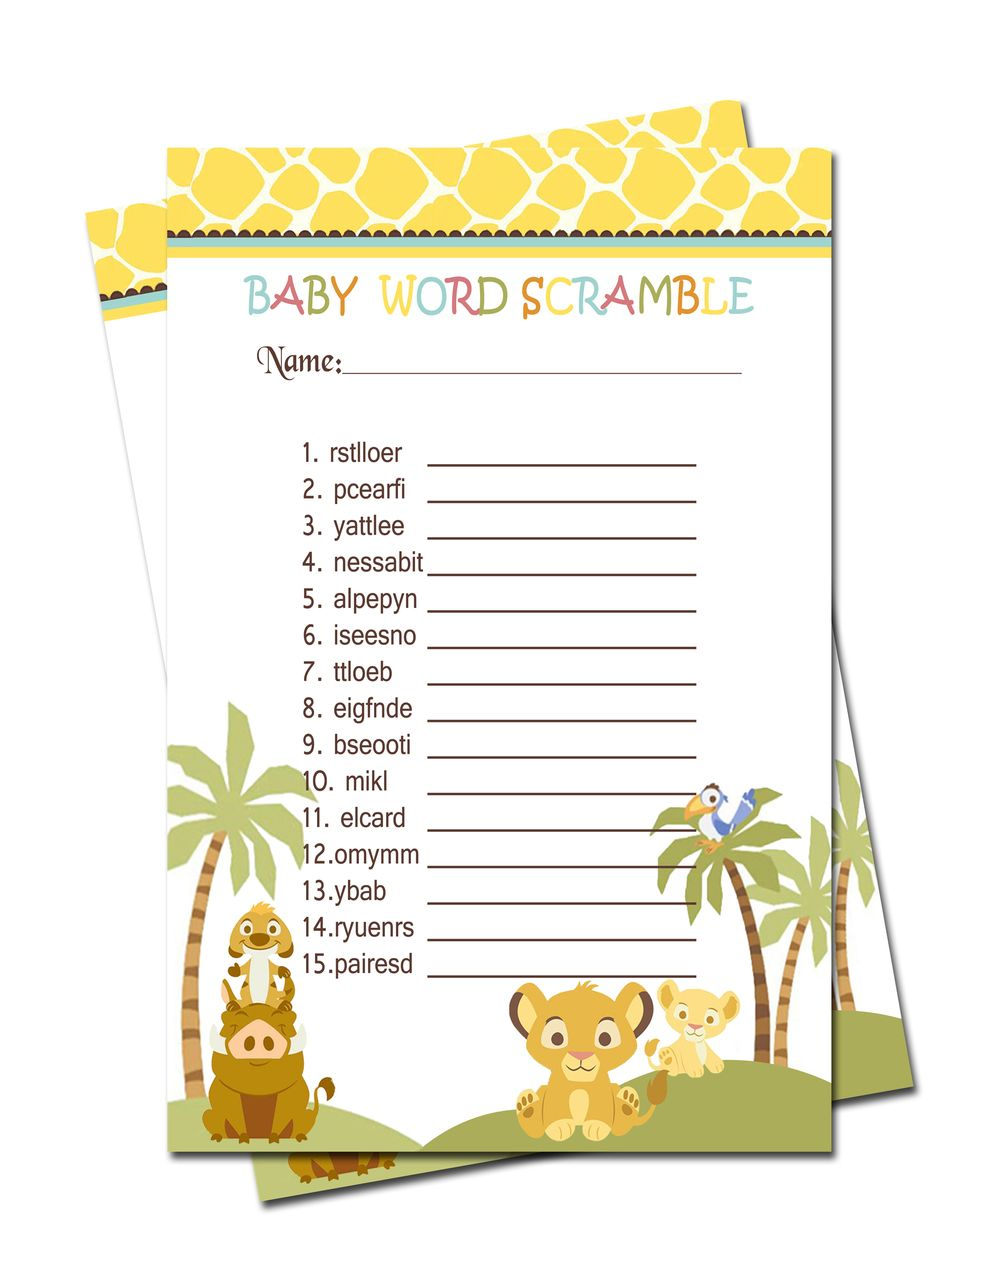 Simba Lion King Baby Shower Games Pregnancy How Sweet